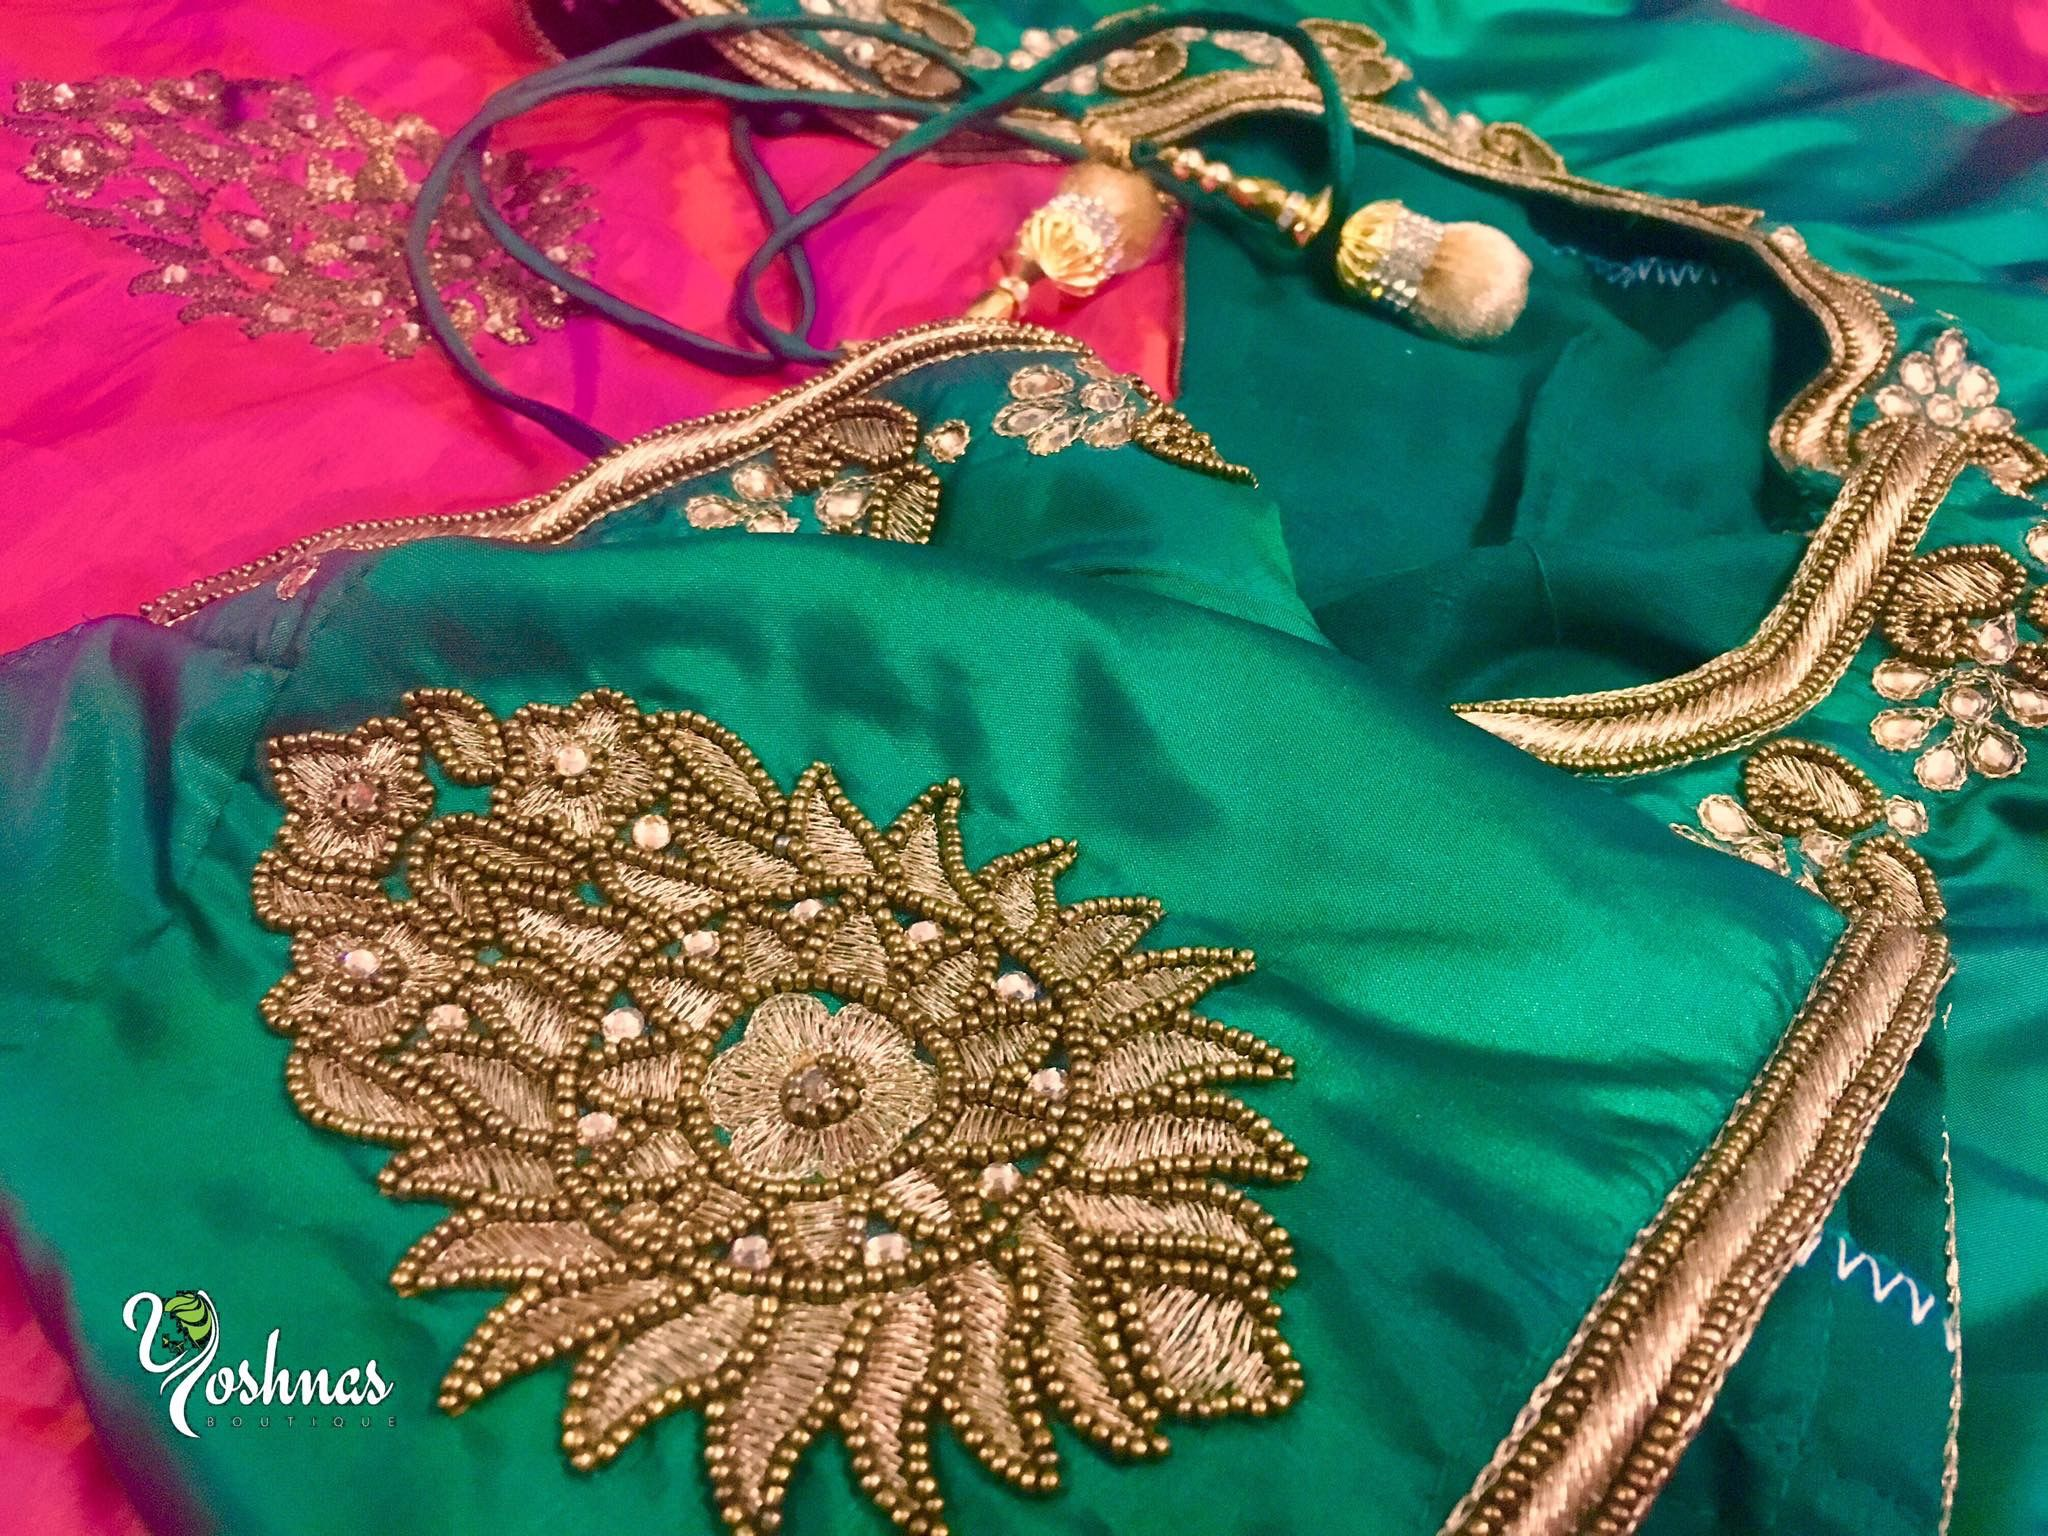 Pin by nandhini raj on blouse designs pinterest blouse designs blouse patterns blouse designs embroidery patterns hand designs saree blouse apply stitching bankloansurffo Images